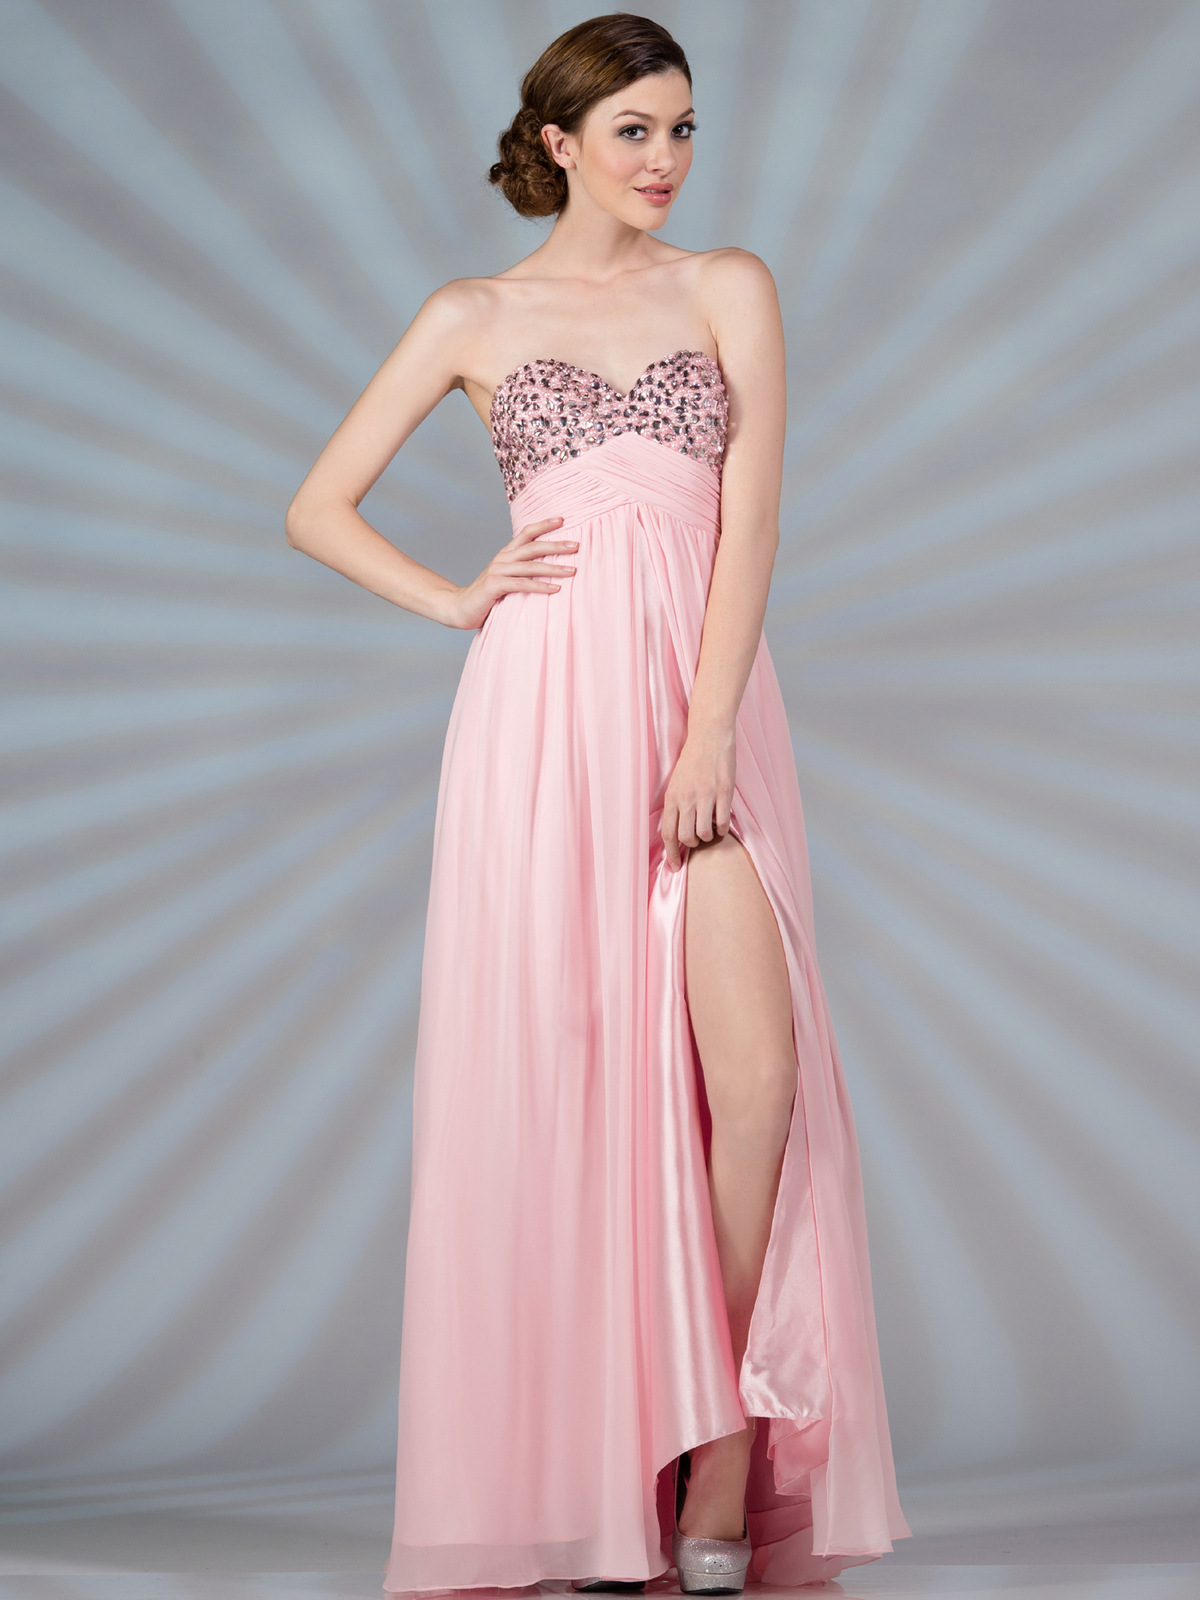 Baby Pink Chiffon Evening Dress | Sung Boutique L.A.